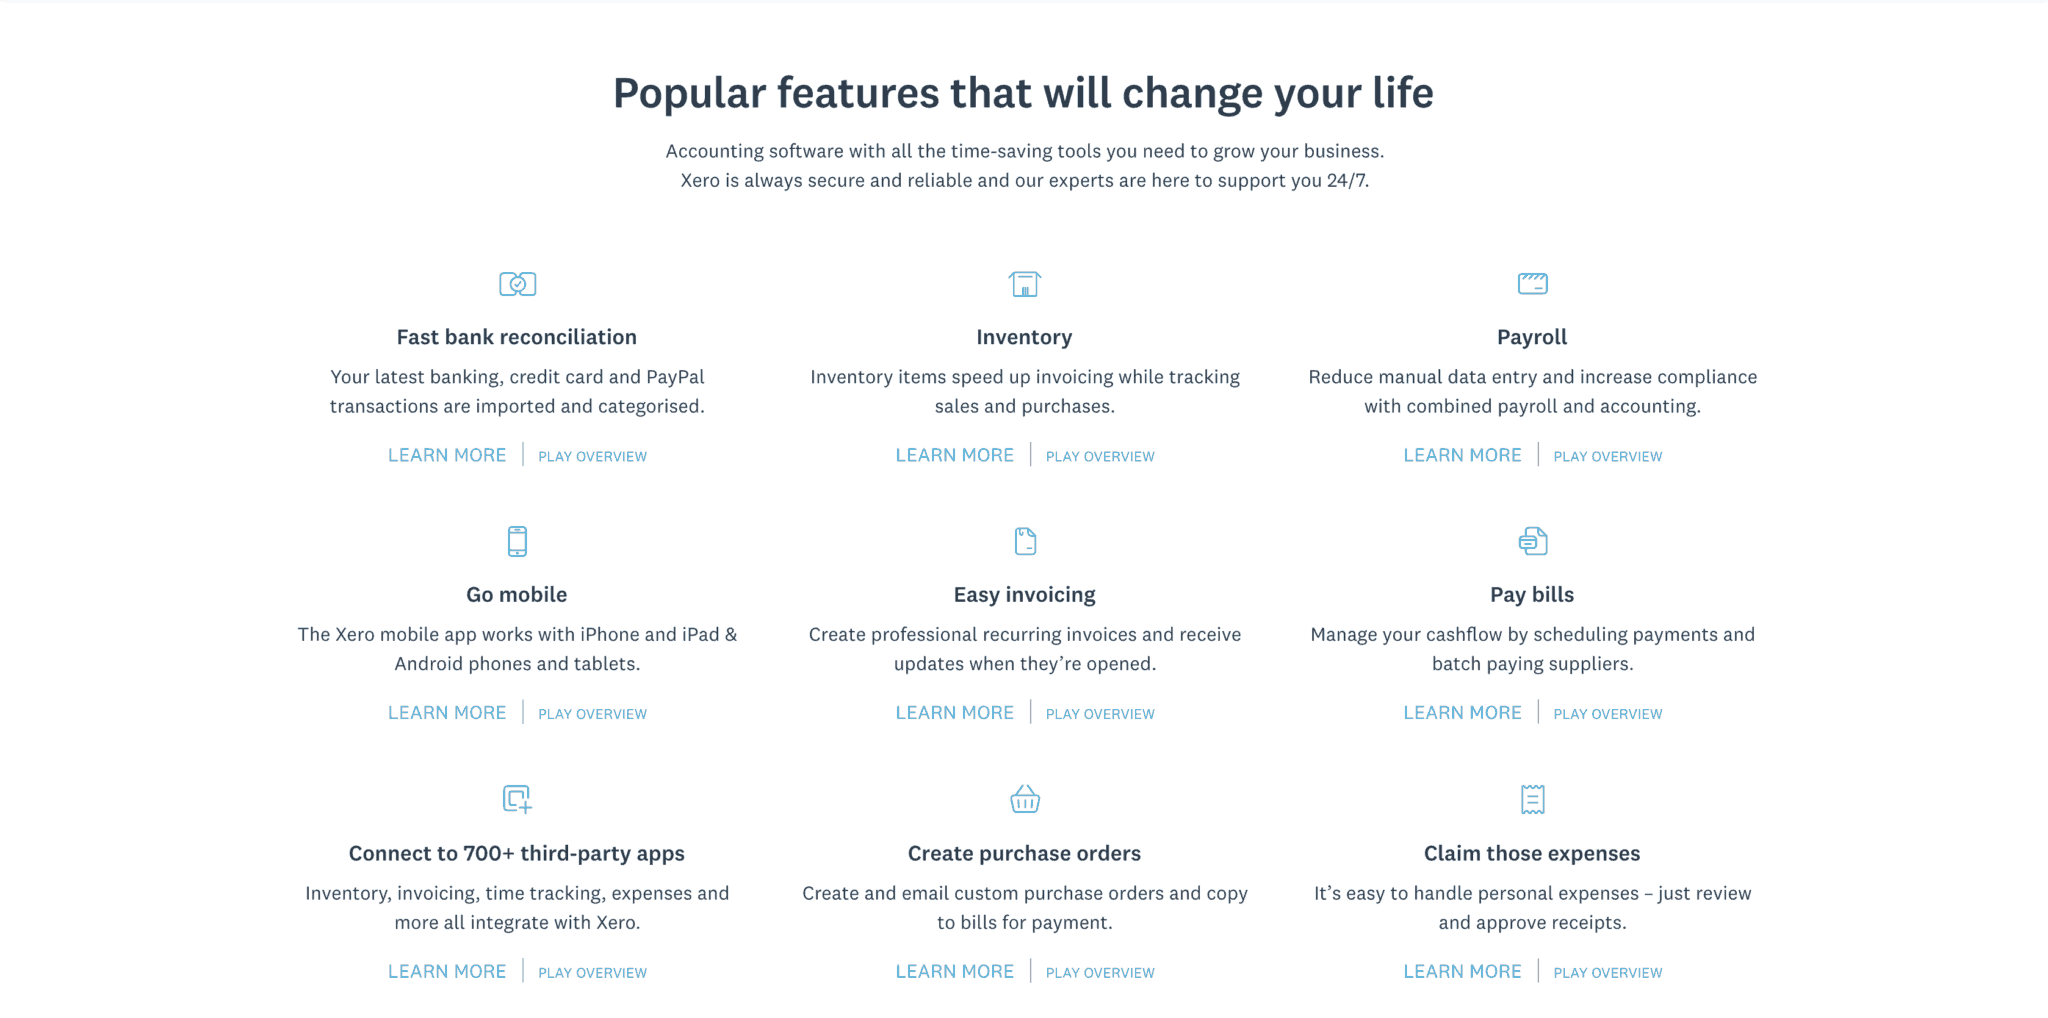 Popular features that will change your life